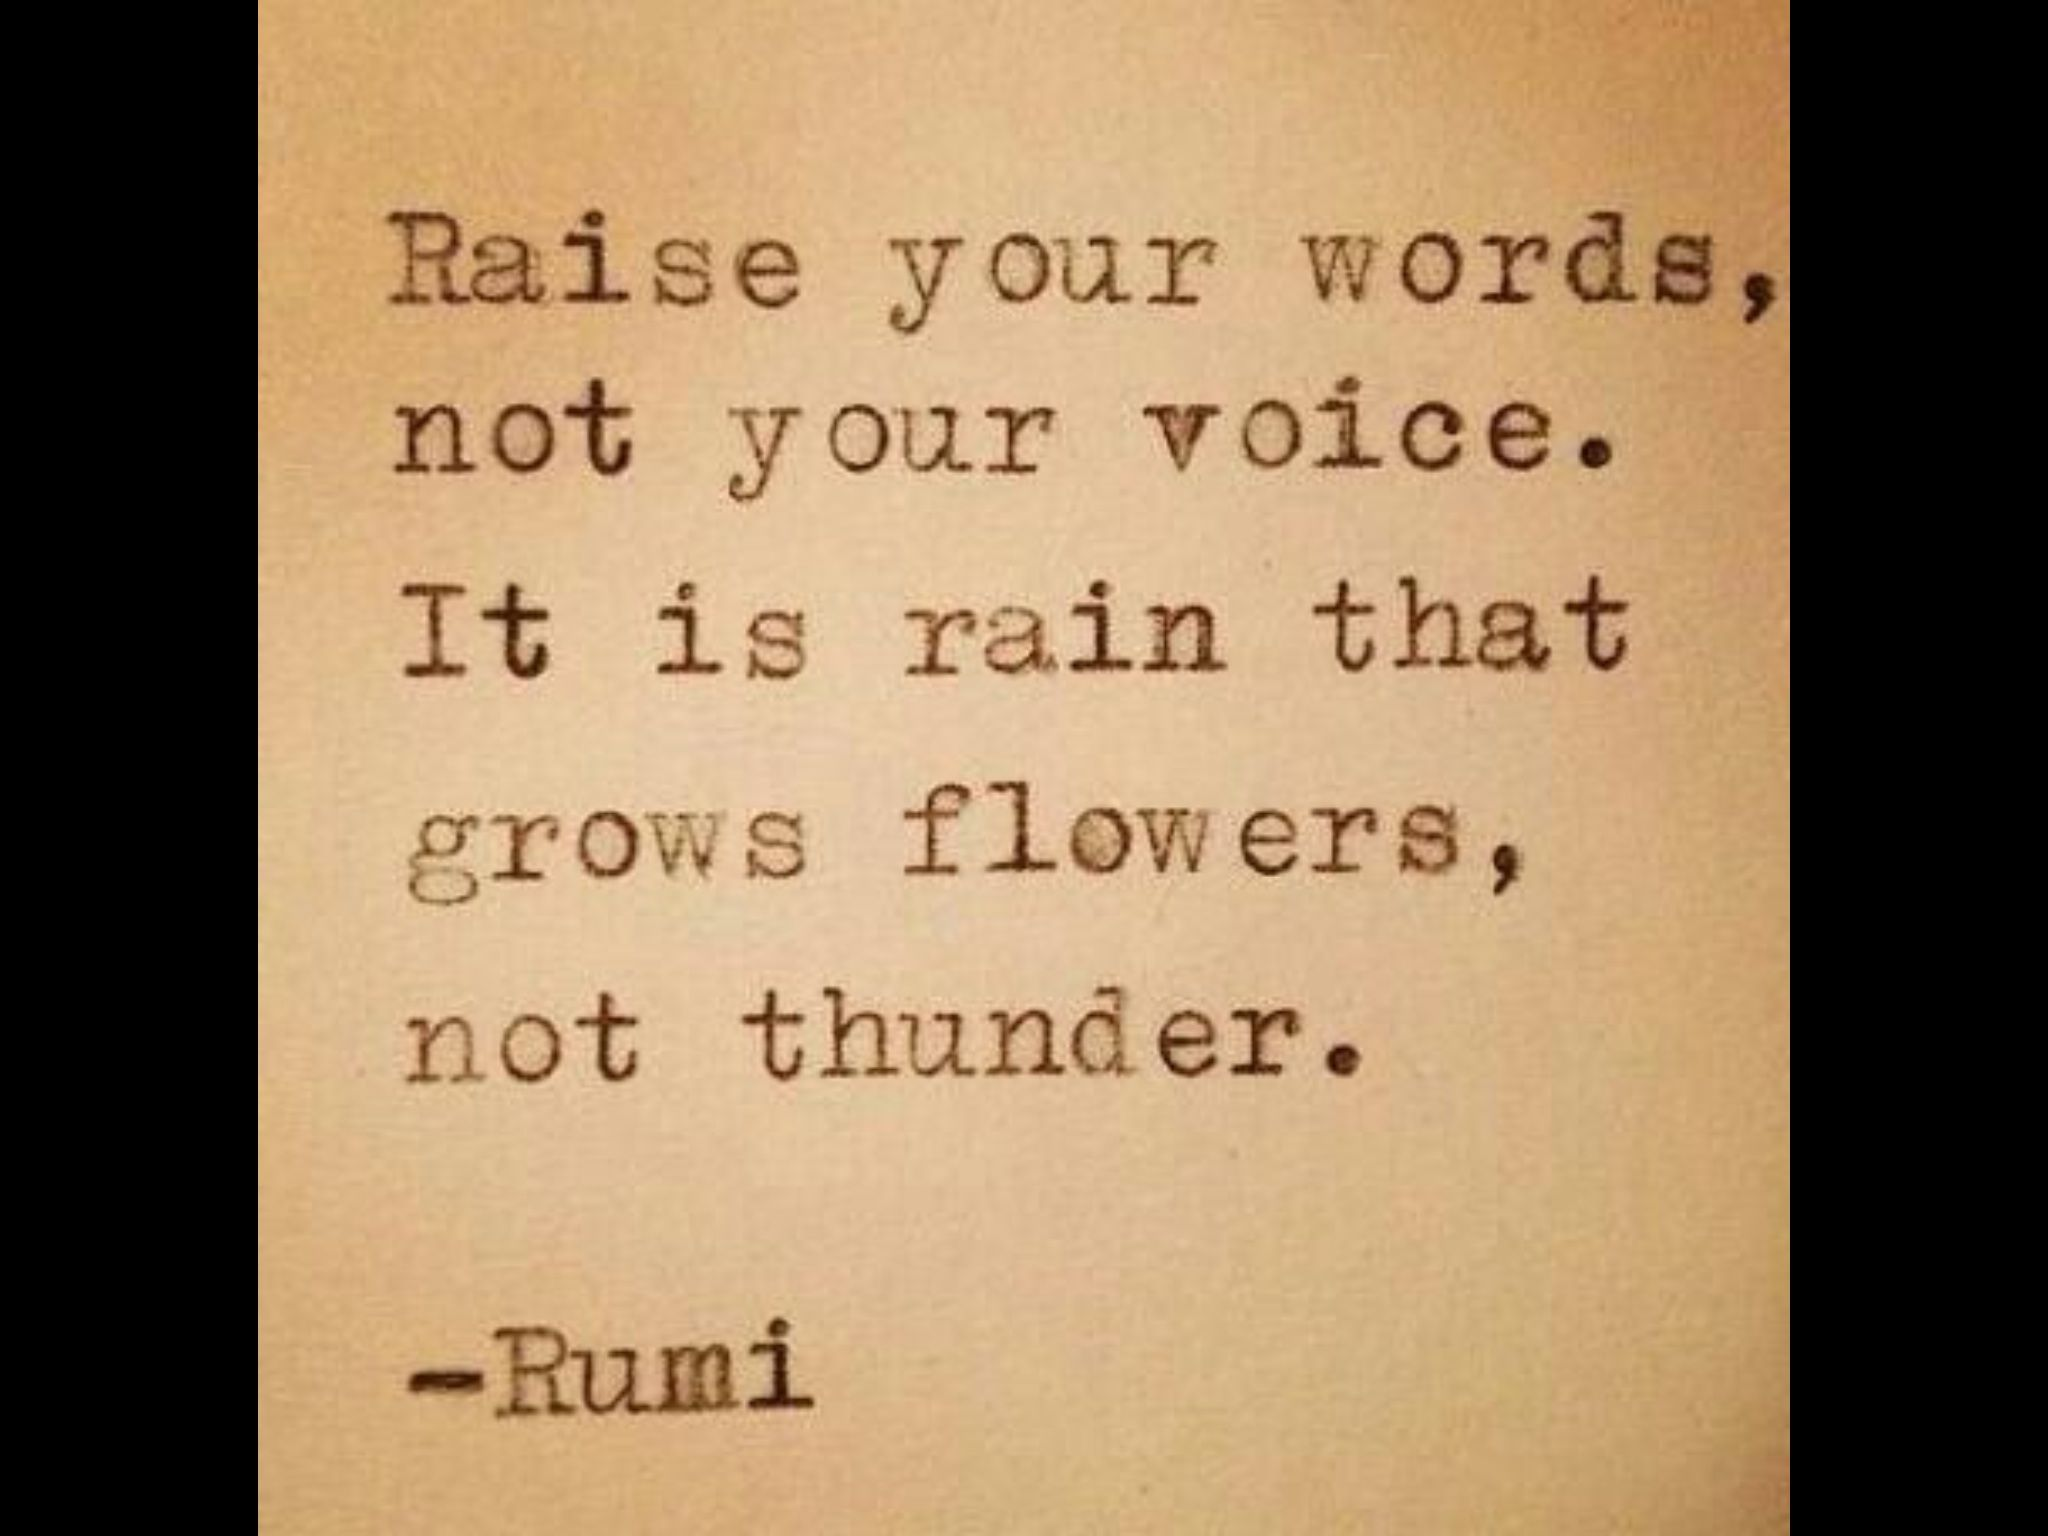 Rumi Quote: Raise Your Words, Not Your Voice, It Is Rain That Grows  Flowers, Not Thunder   Another Inspirational Thought For You To Enjoy Today!